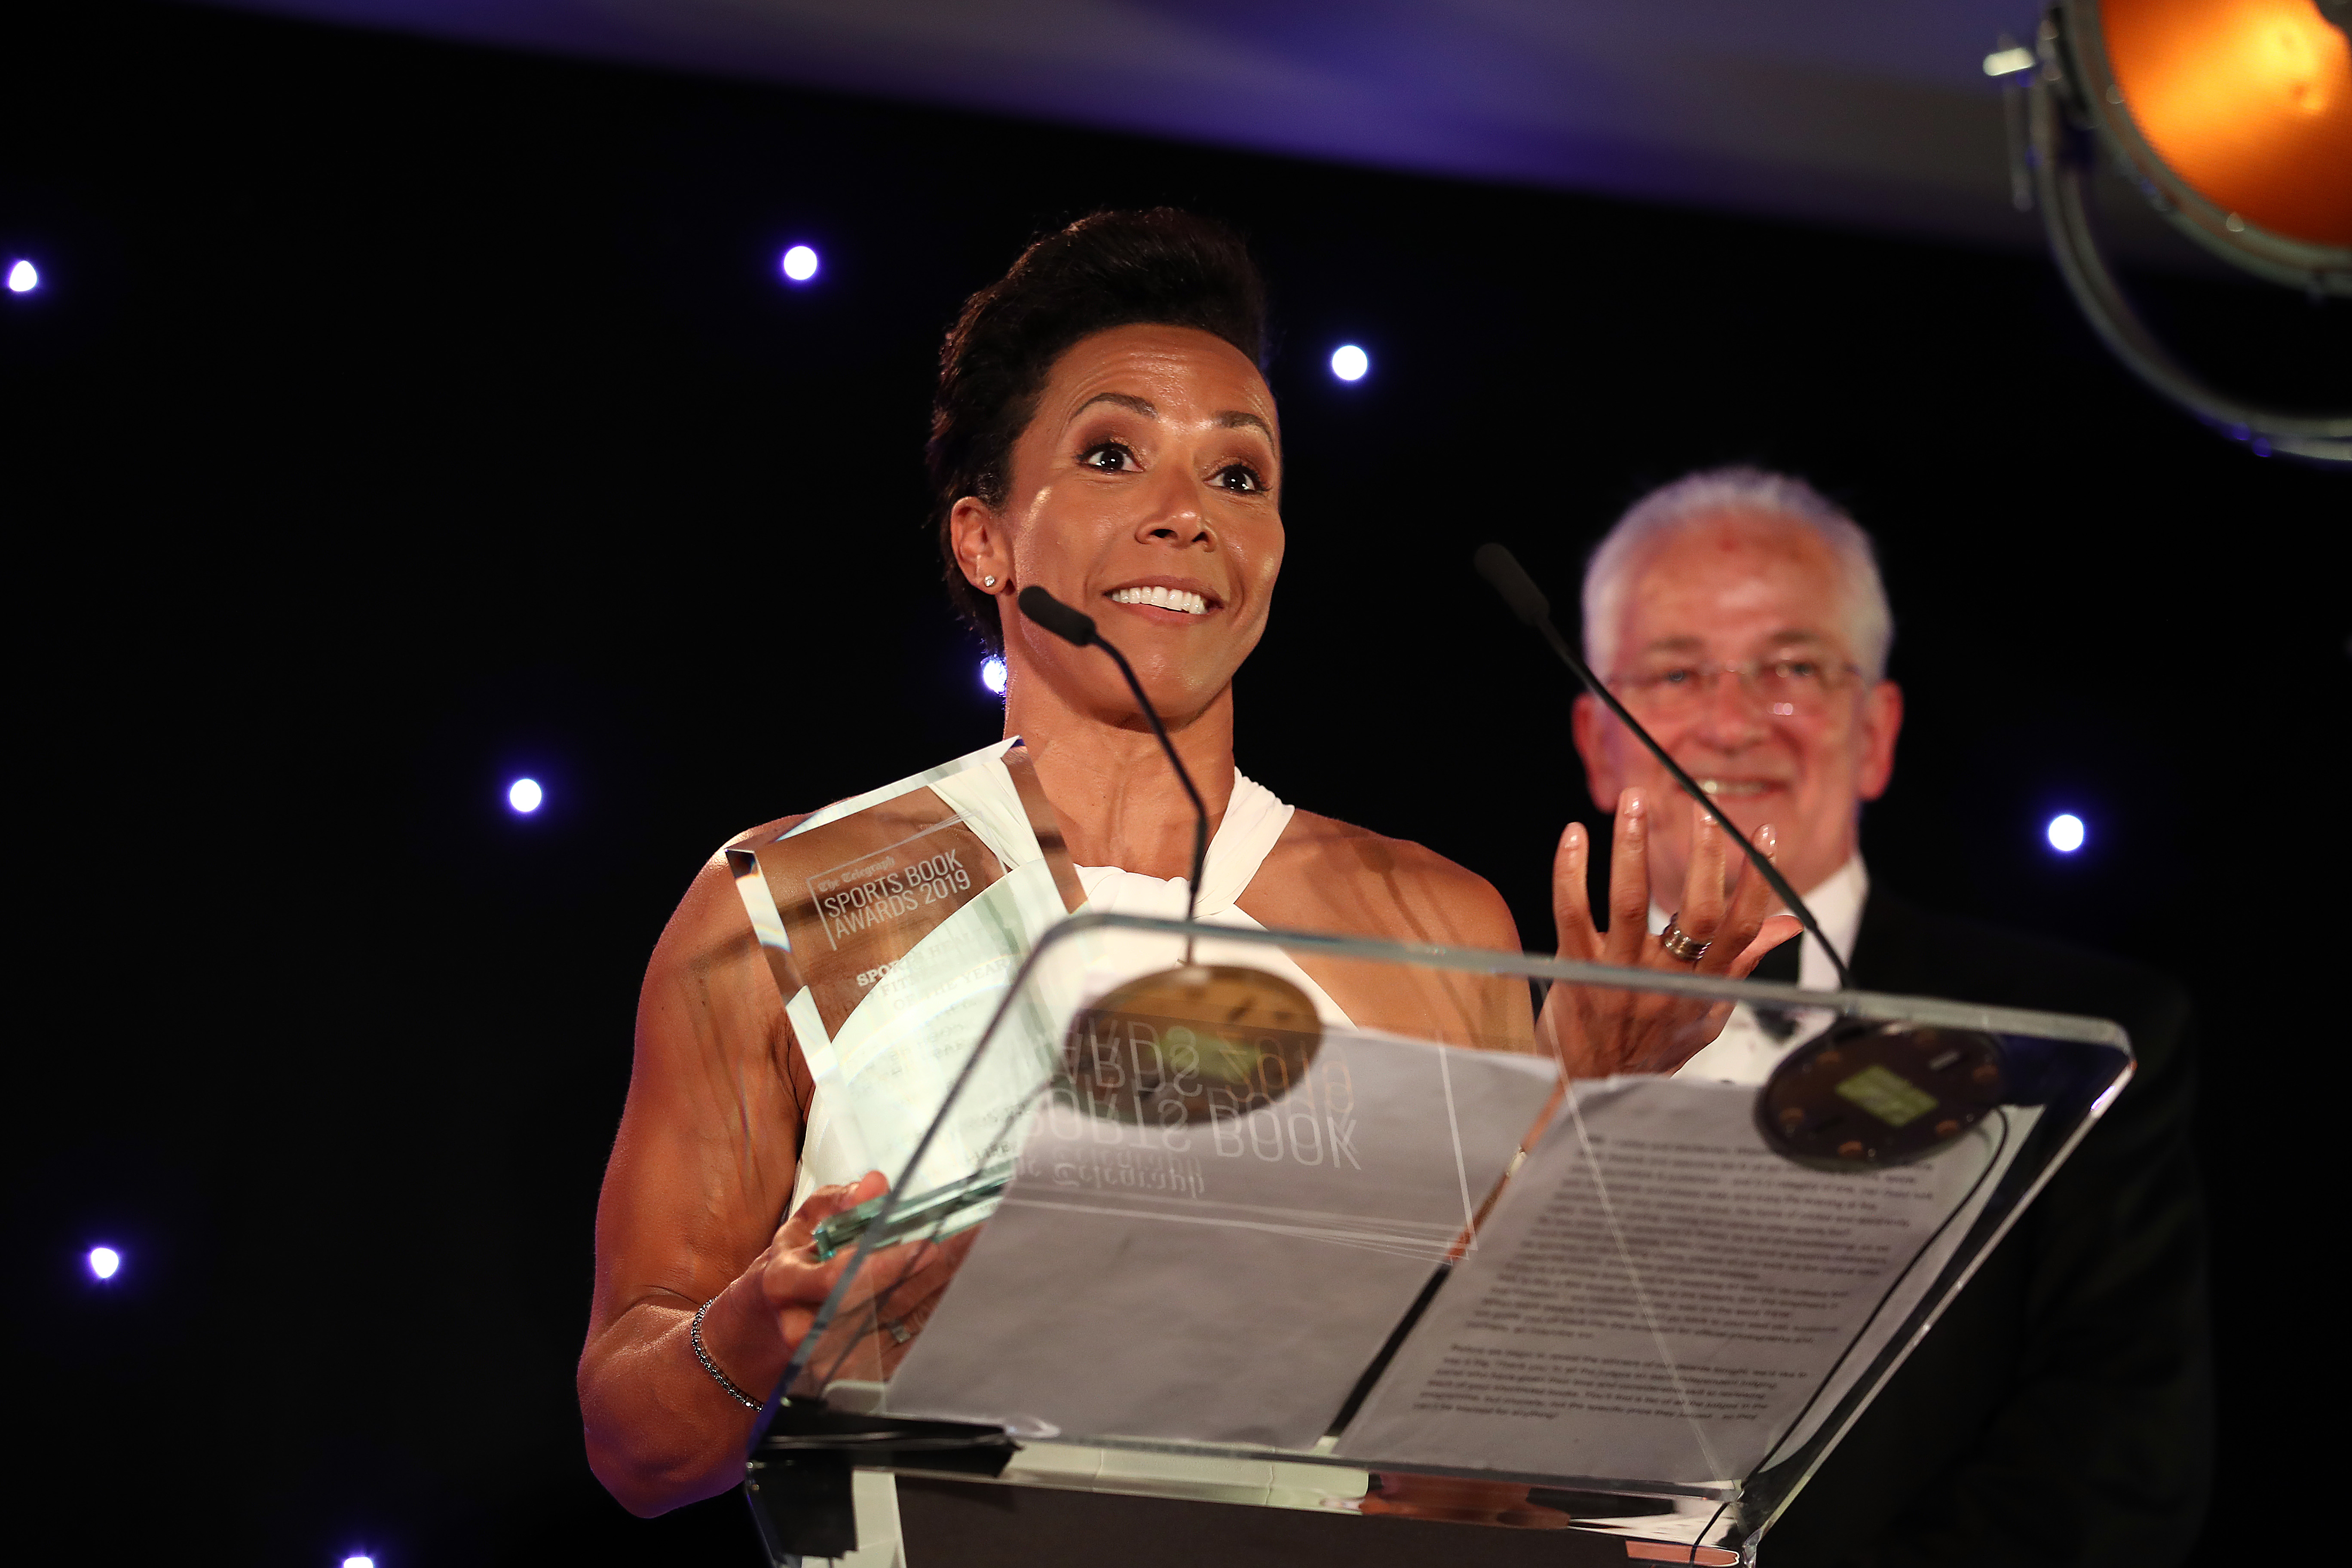 Winner of the Health &; Fitness Book of the Year, Dame Kelly Holmes makes her acceptance speech during the Sports Book Awards at Lord's Cricket Ground on June 04, 2019 in London, England. (Photo by Bryn Lennon/Getty Images for Sports Book Awards)